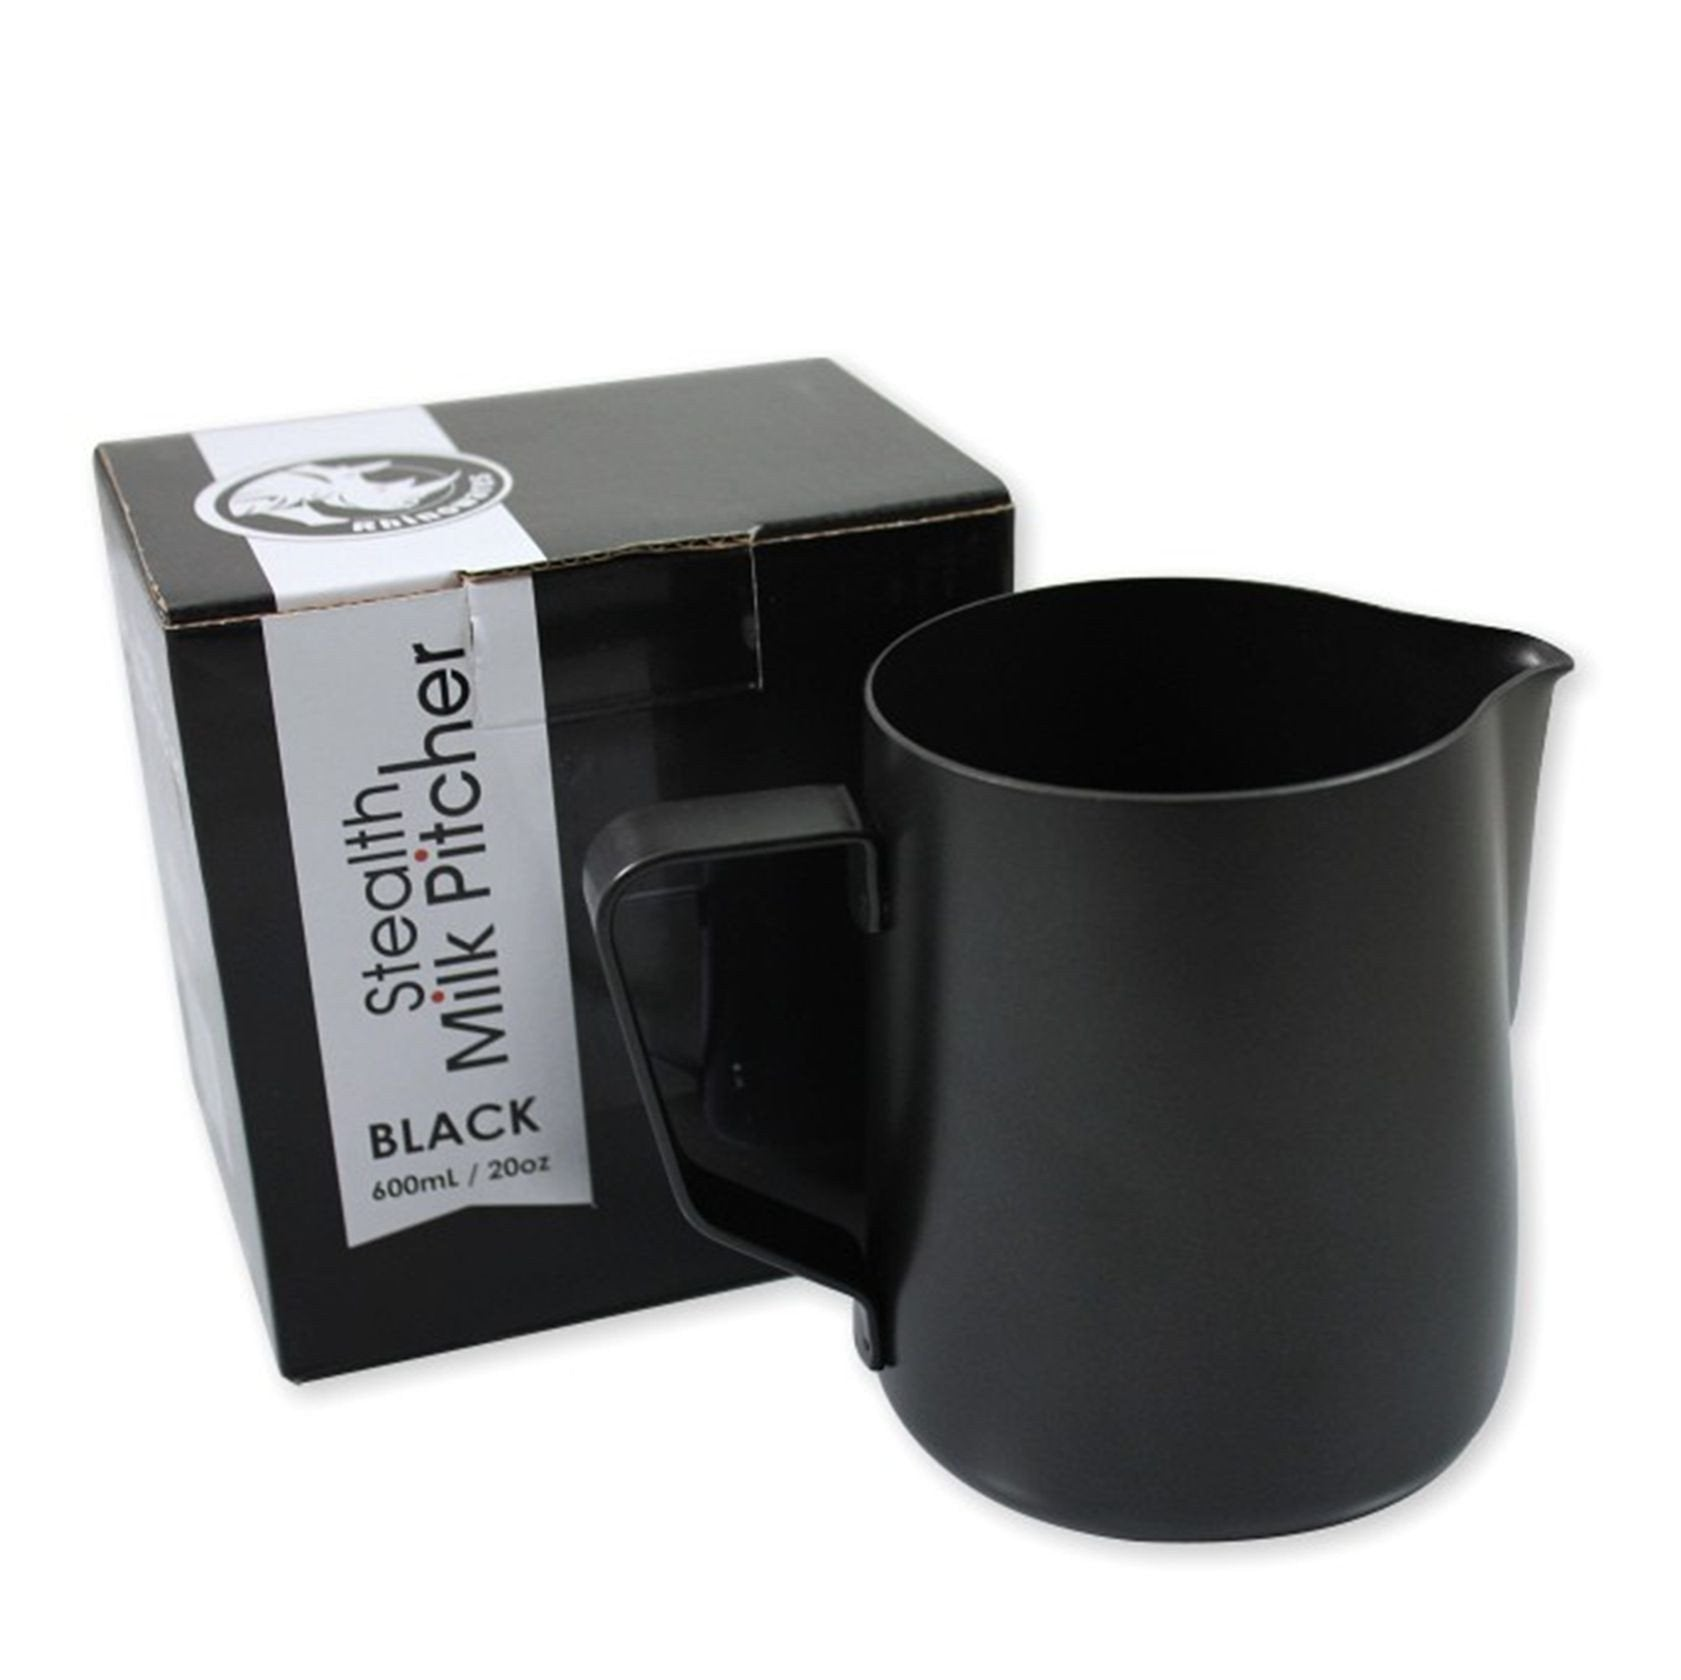 Rhino Coffee Gear Stealth Milk Pitcher 20oz/600ml